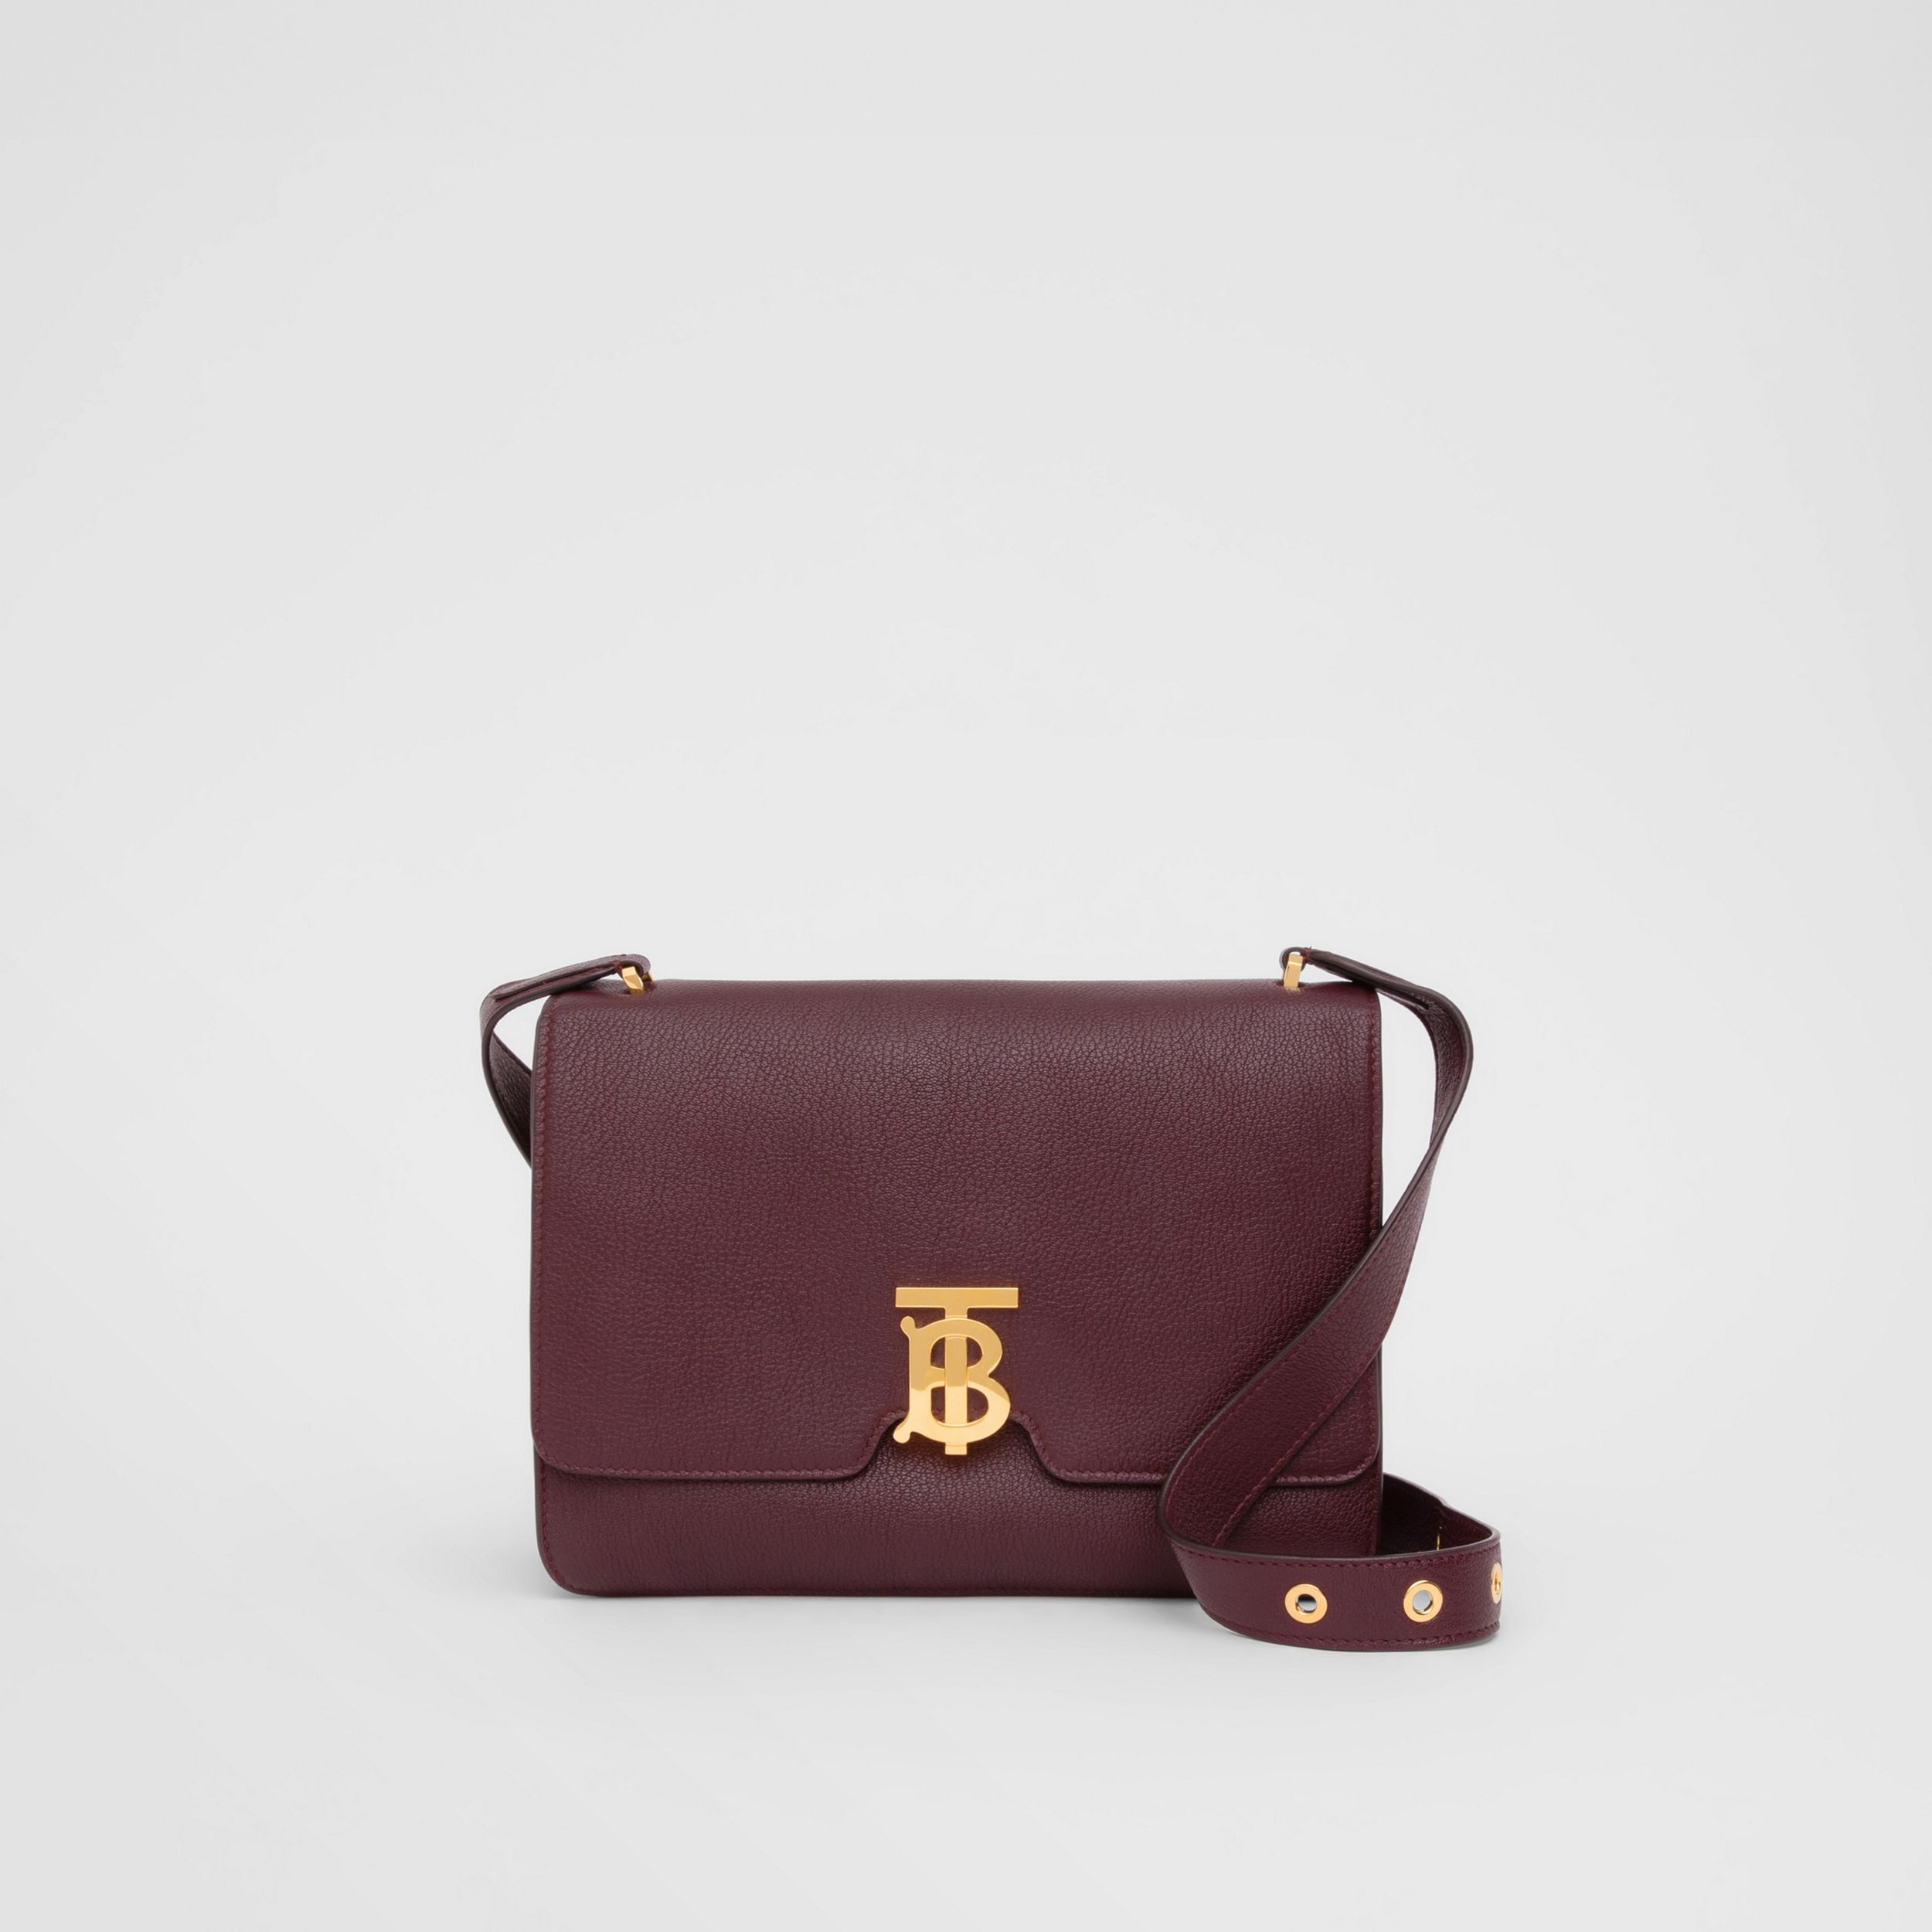 Medium Grainy Leather Alice Bag in Deep Claret - Women | Burberry - 1